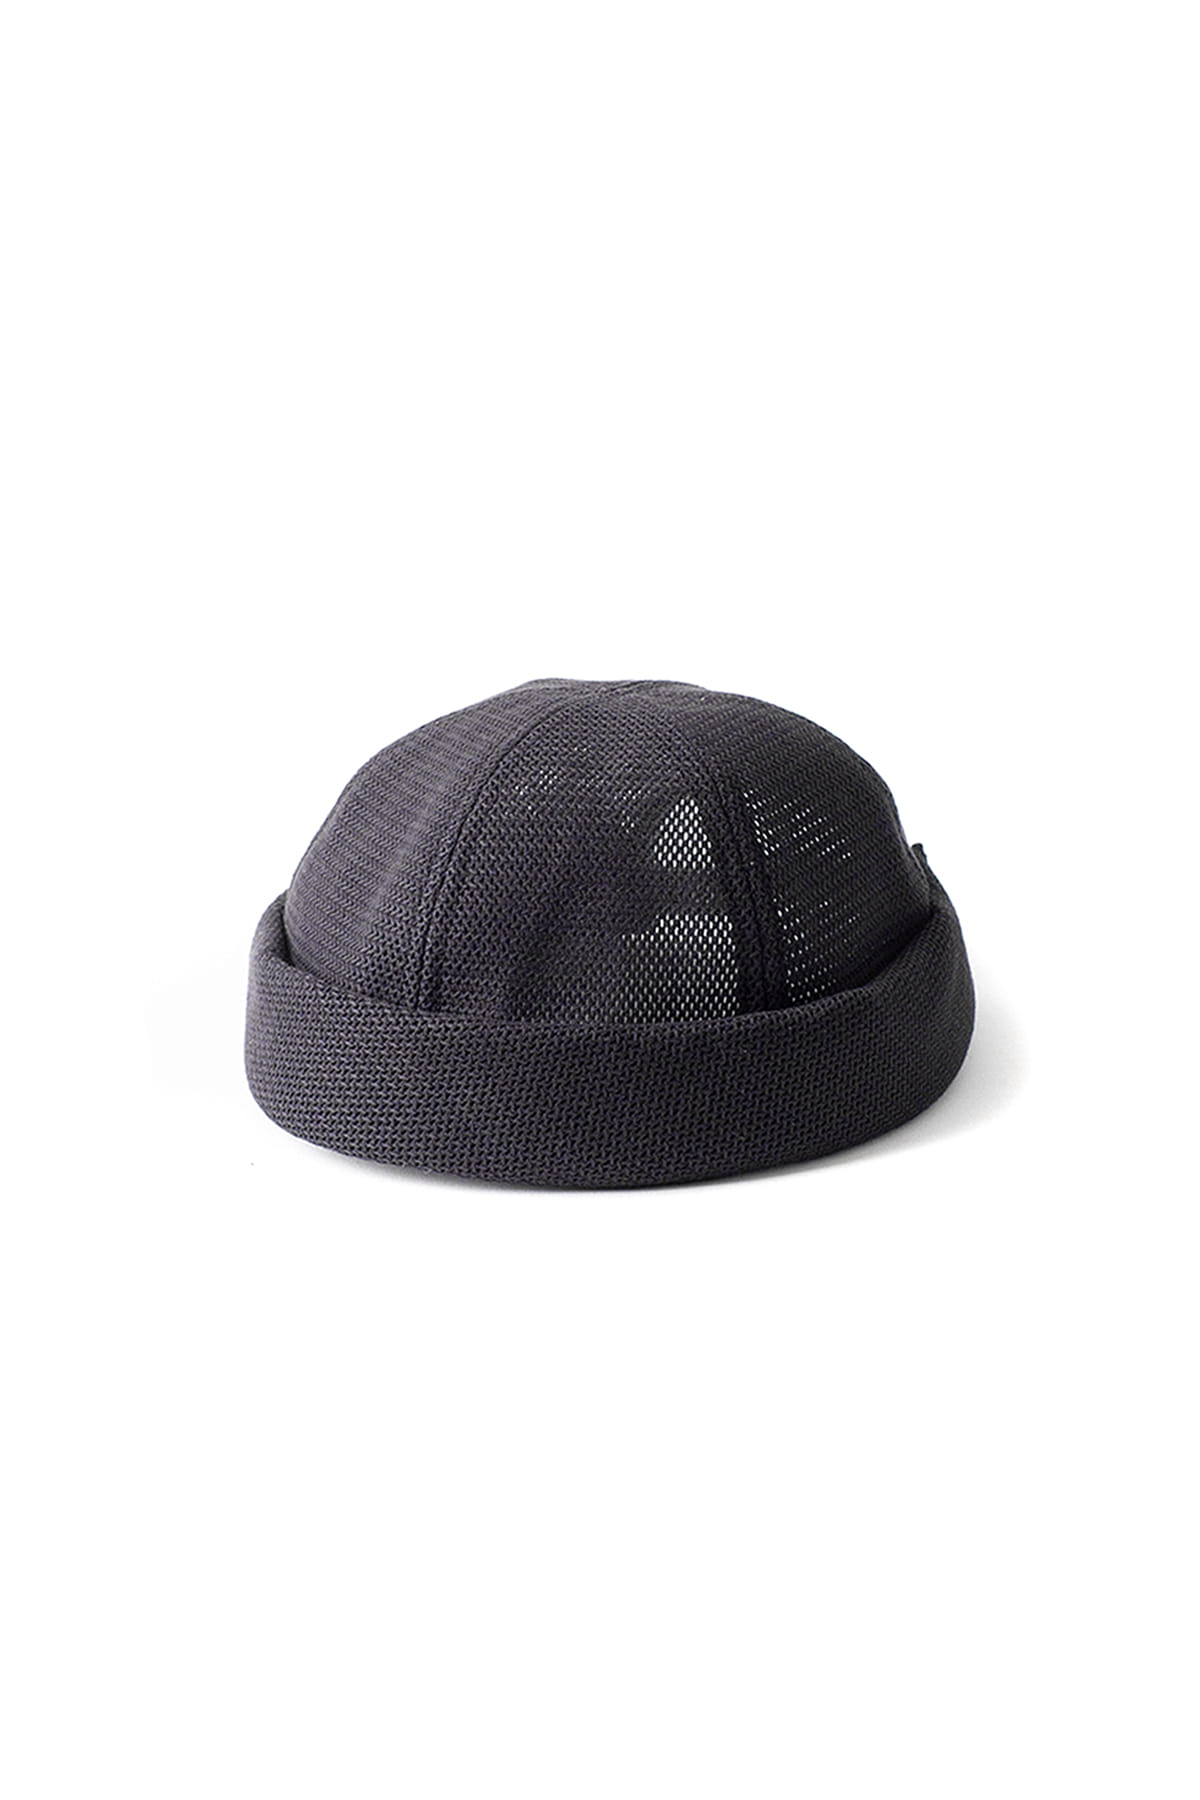 Infielder Design : Tom Cap (Black)